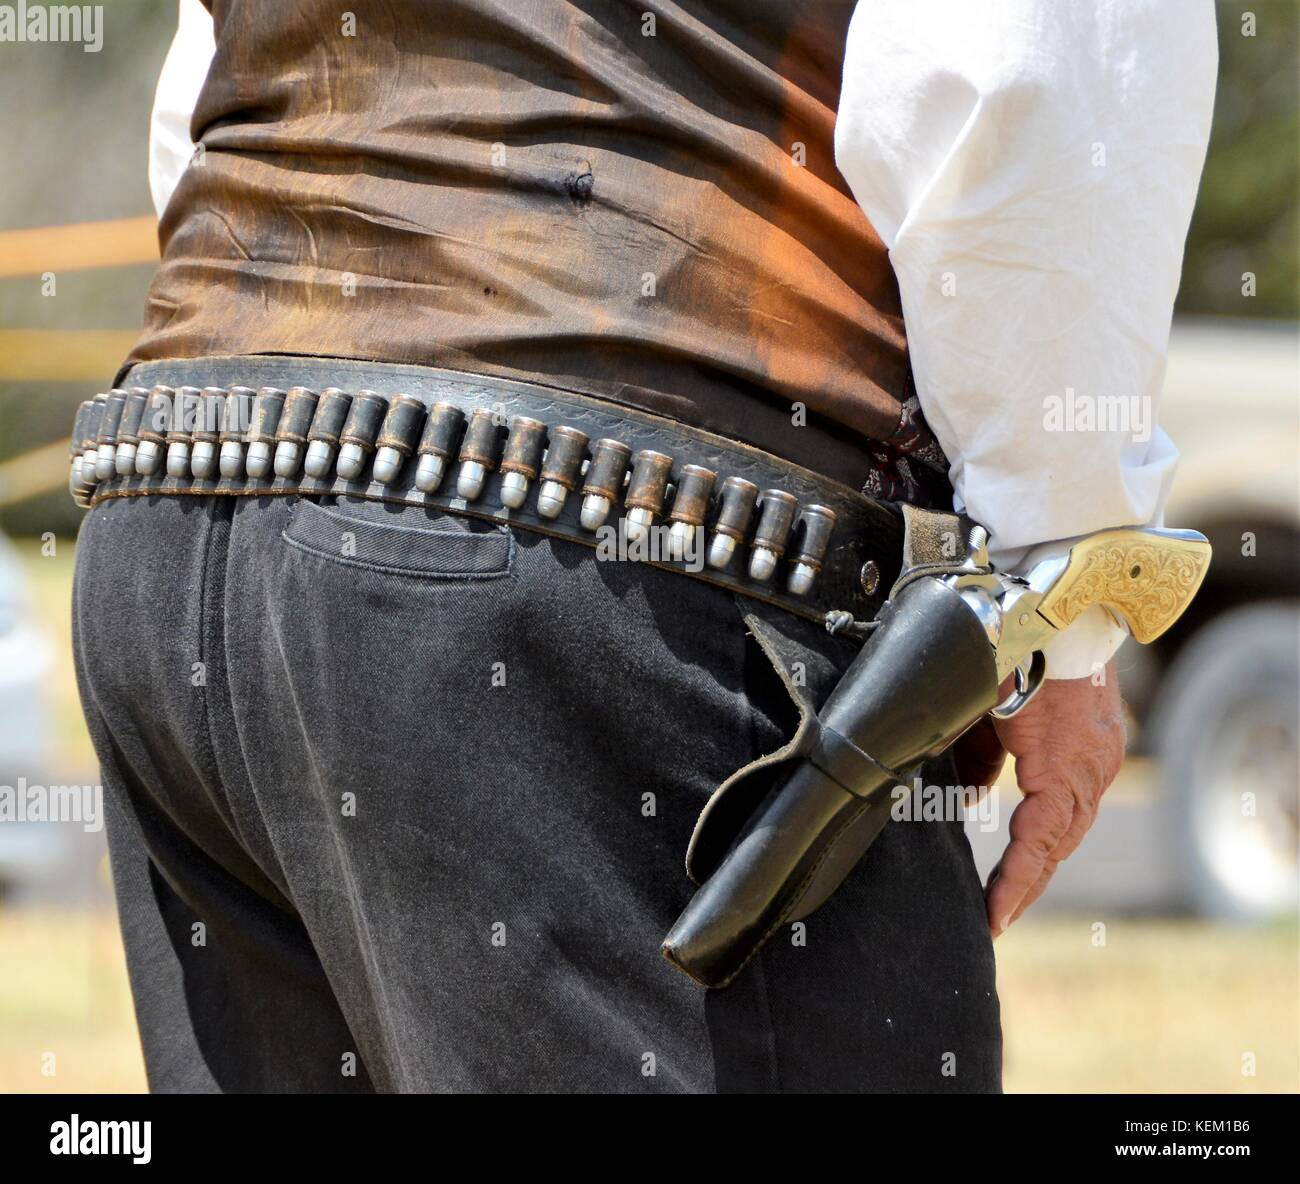 Western Holsters with Six Shooter Revolvers Stock Photo: 163938634